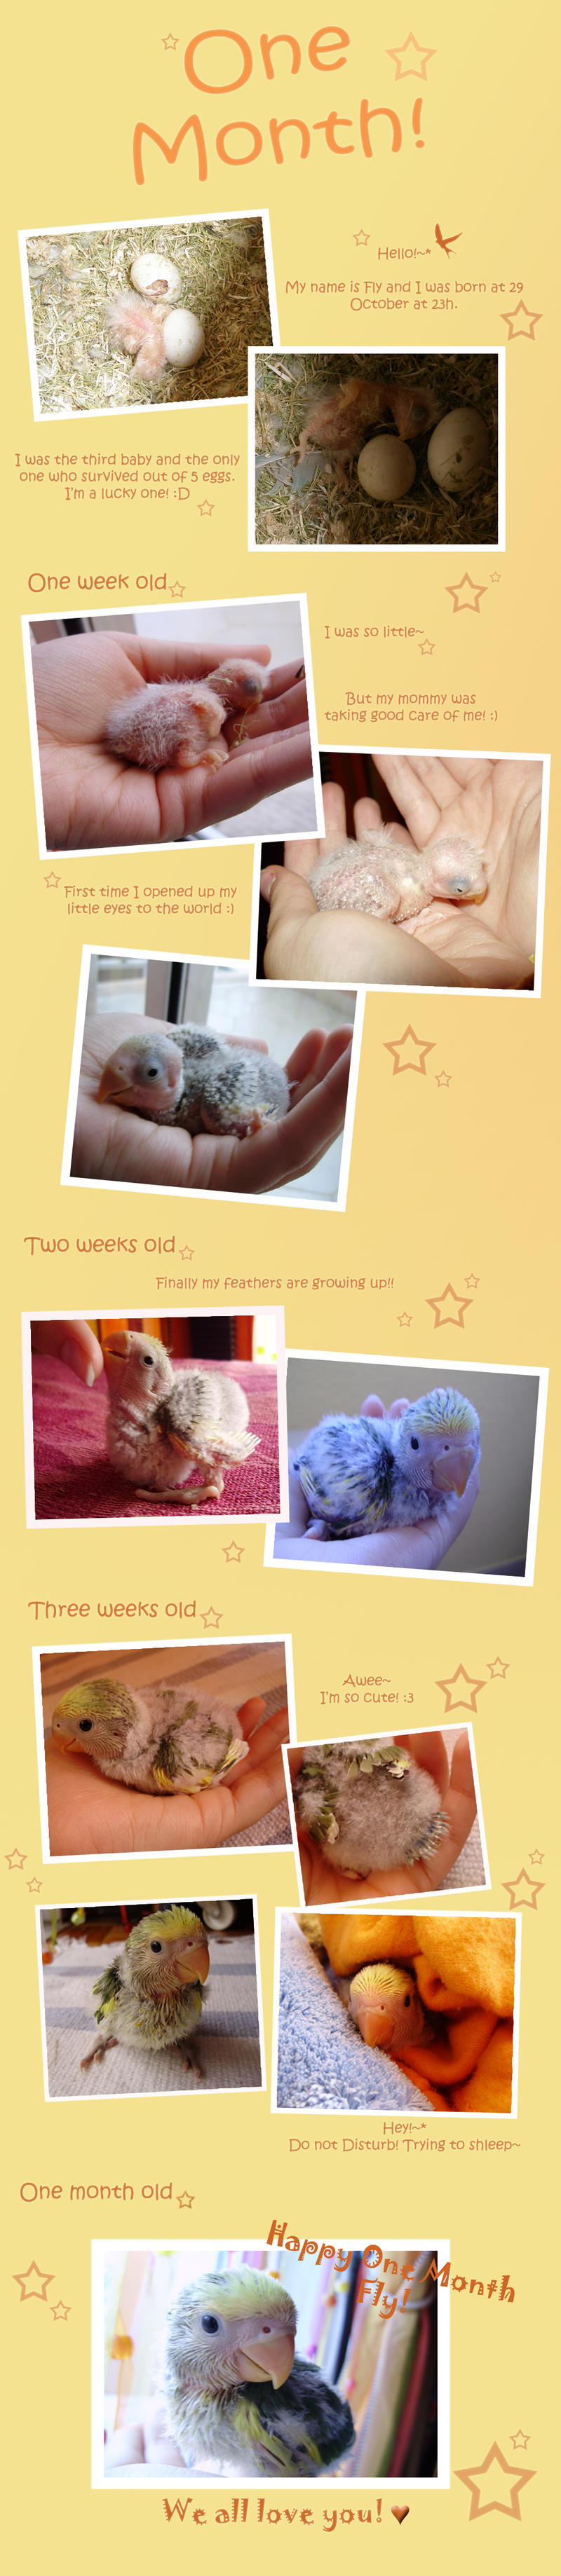 Lovebird One month old by Sara-Araujo